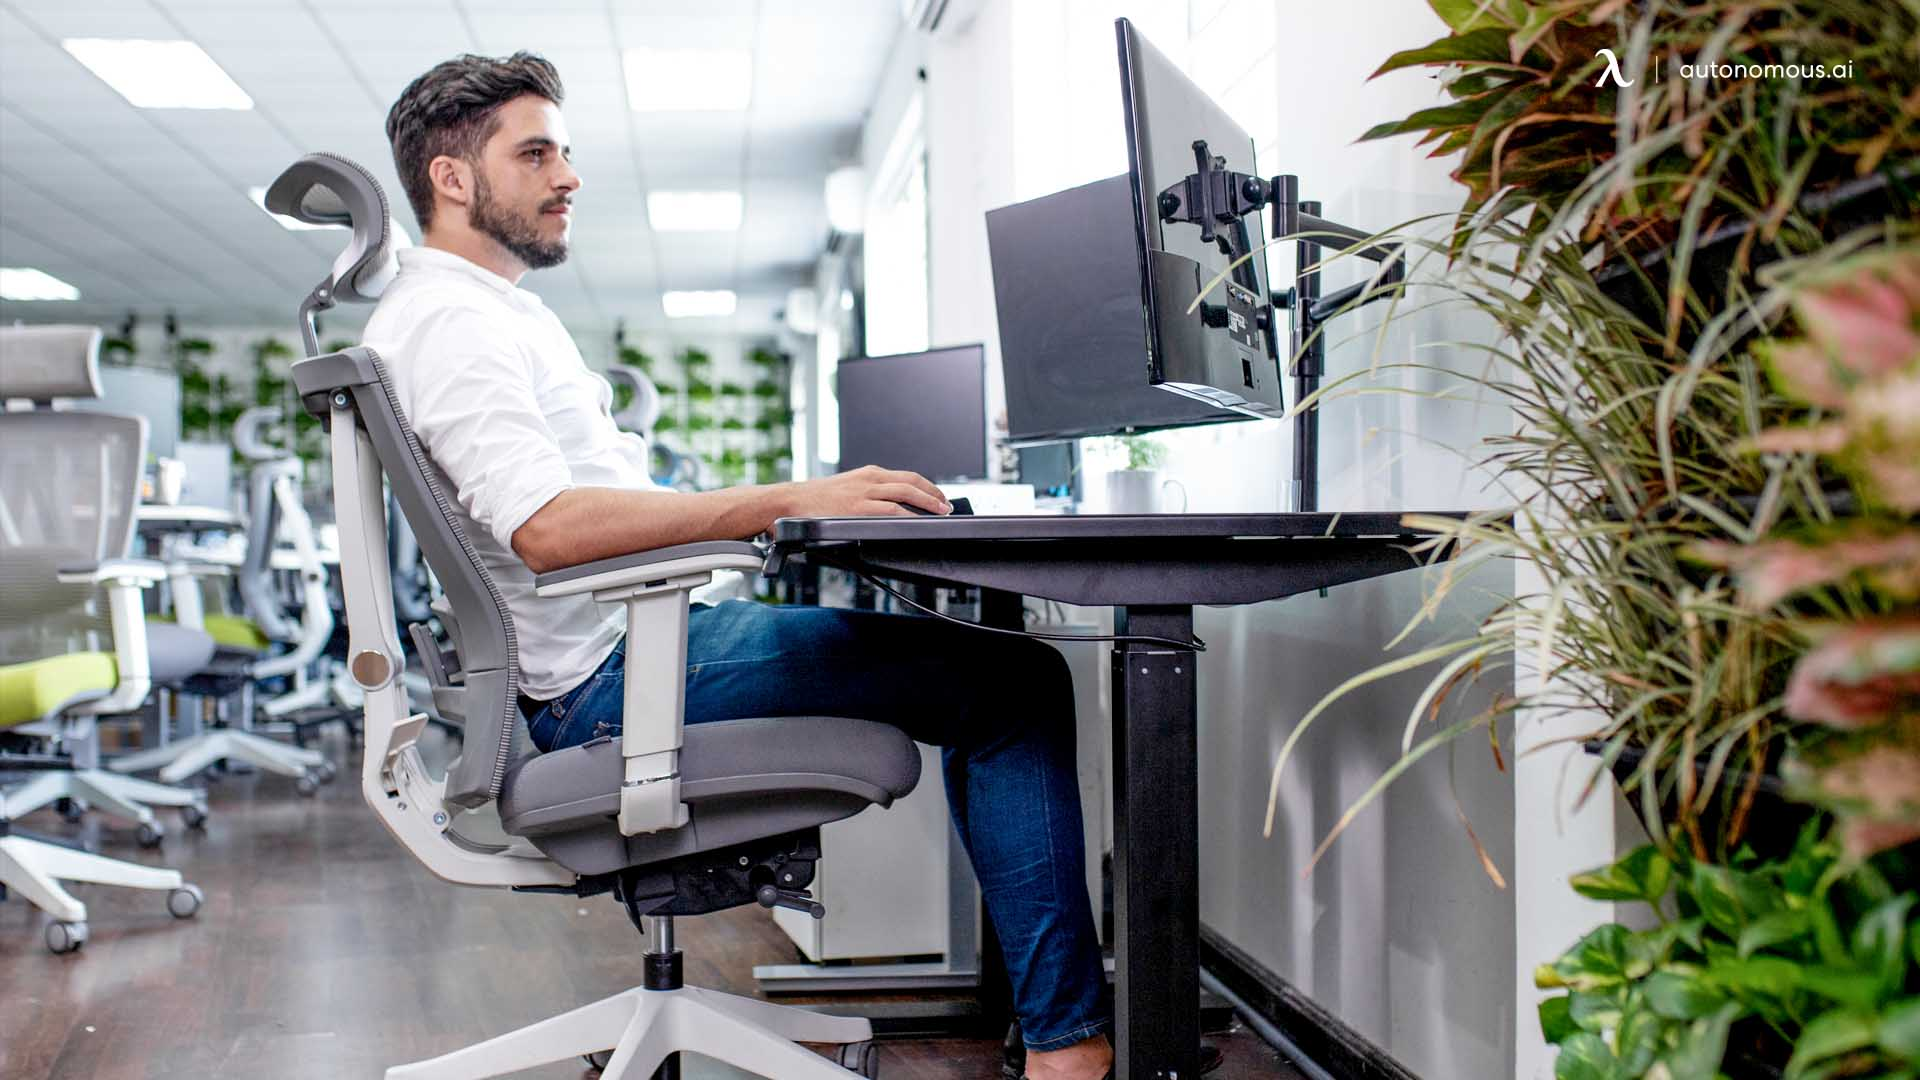 Learning how to sit properly at a desk